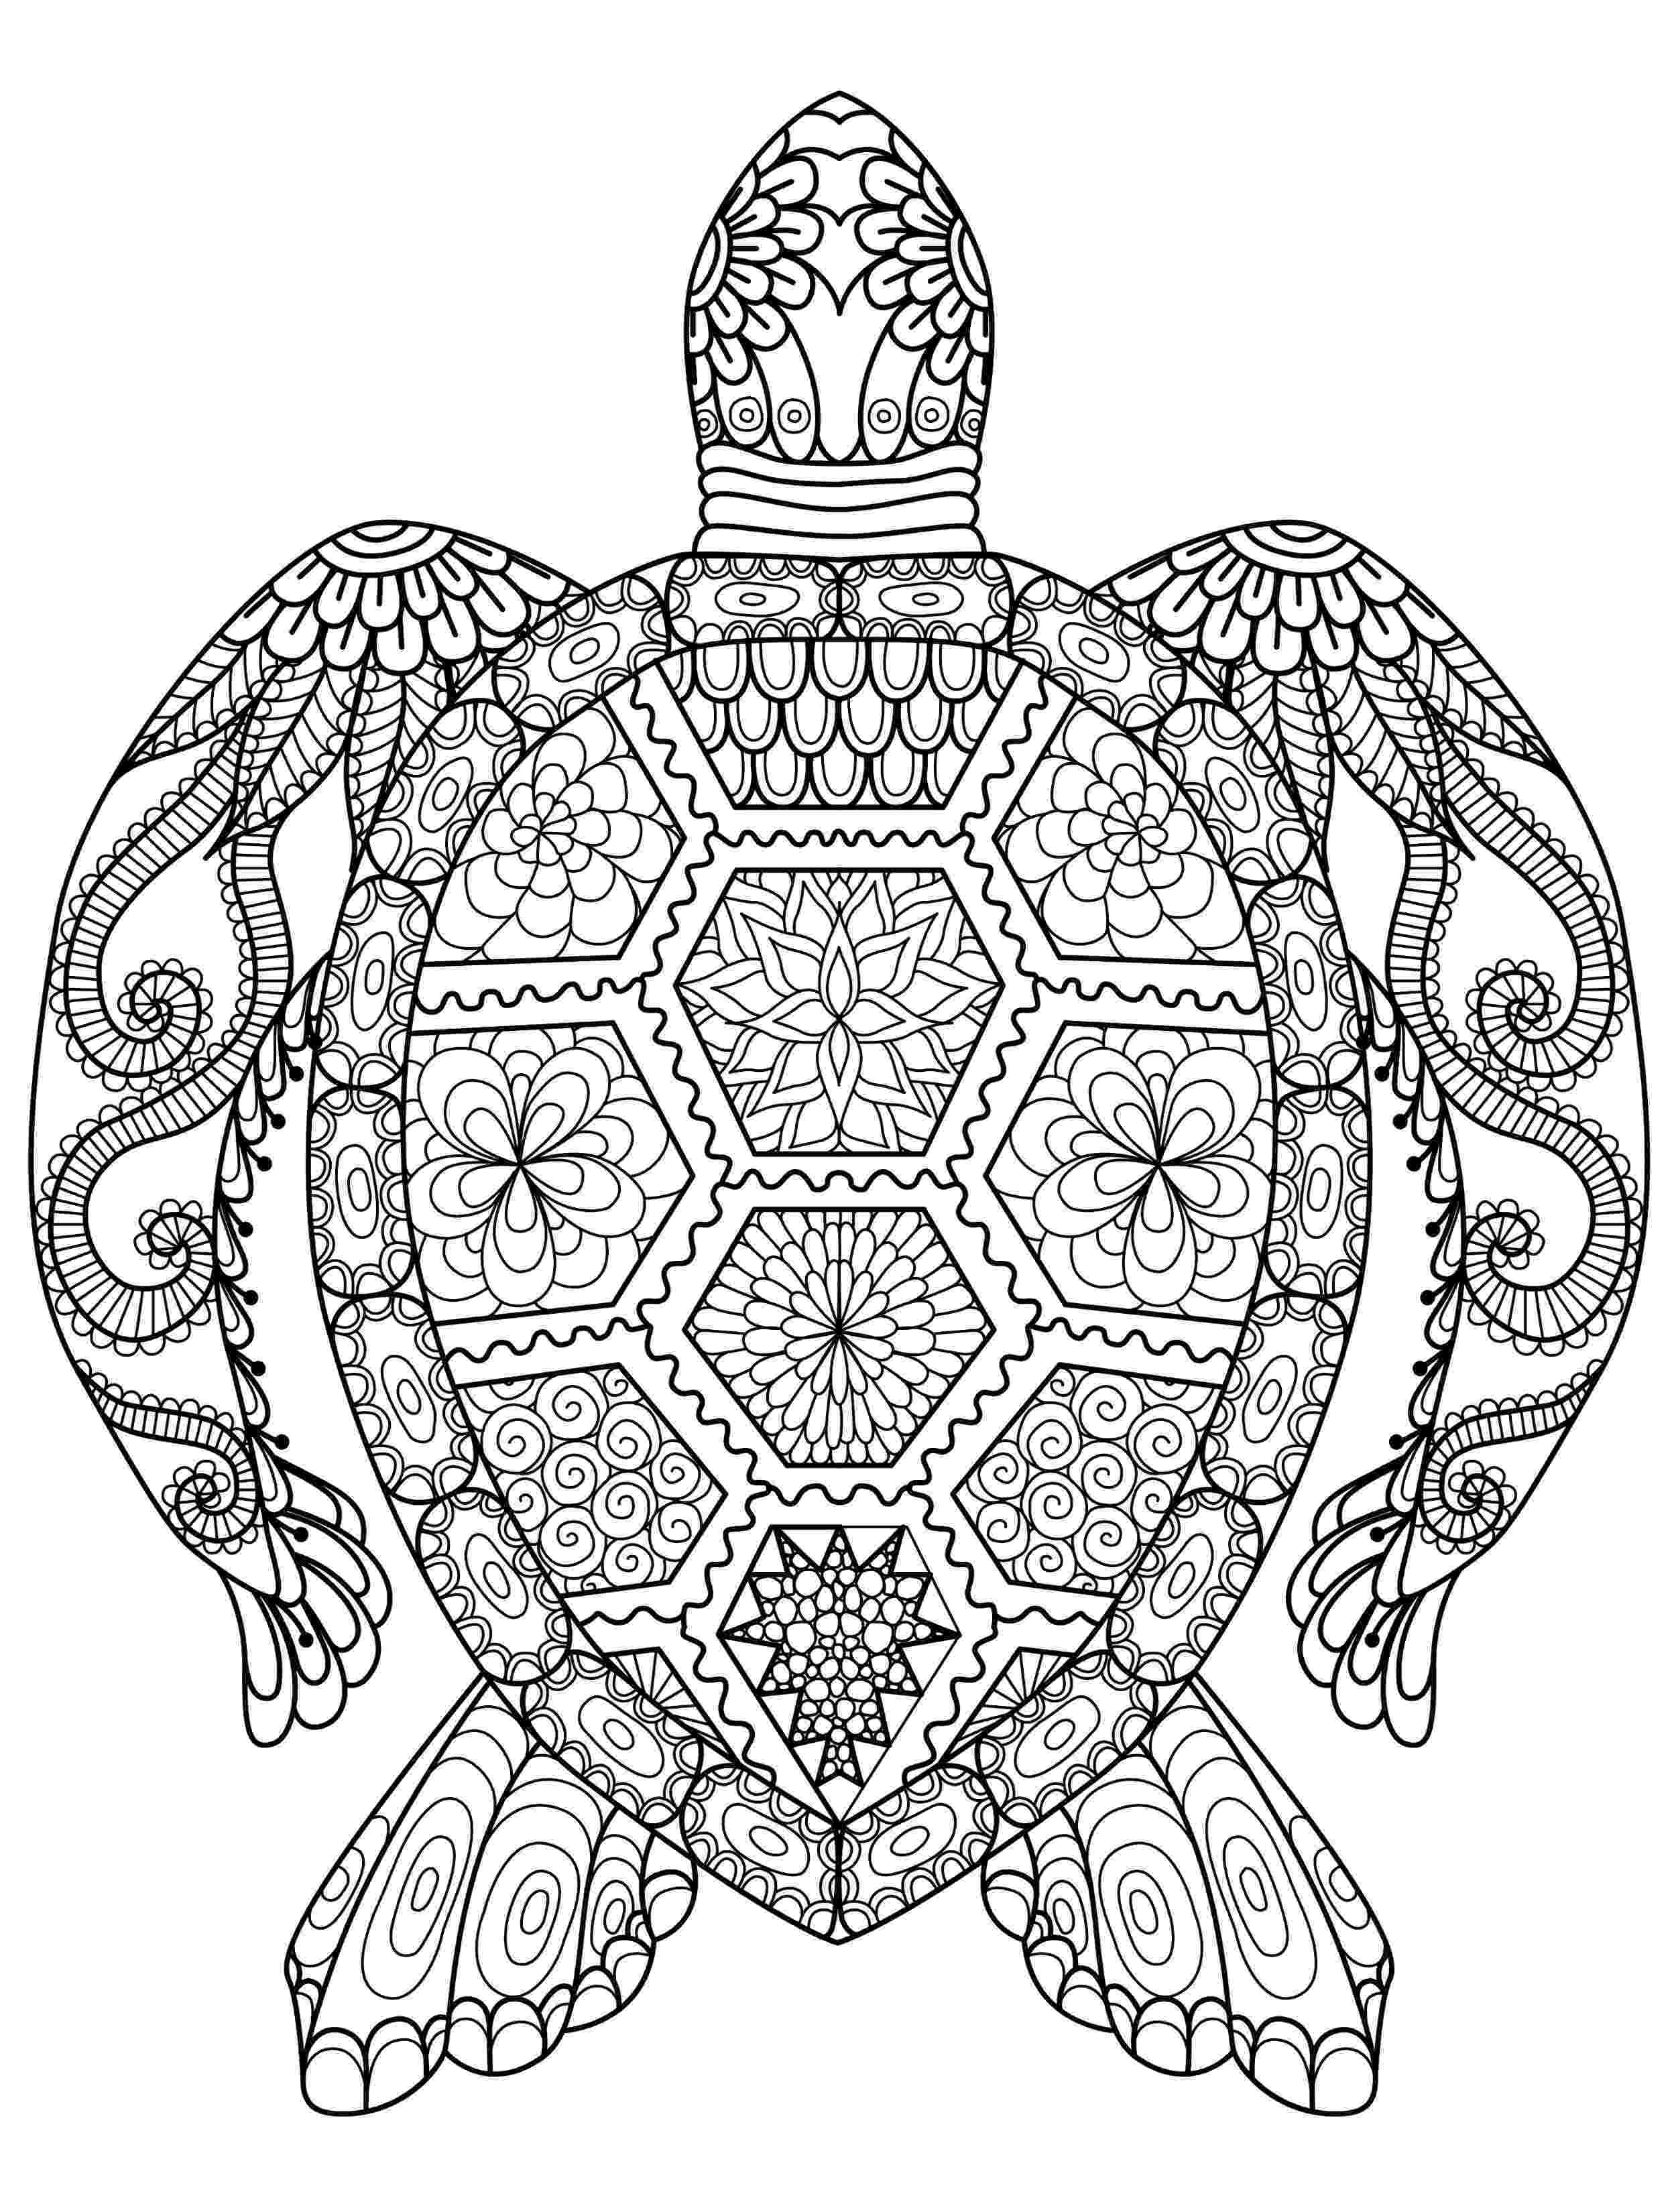 colouring book for adults games free printable suicide squad coloring pages for adults adults games colouring for book